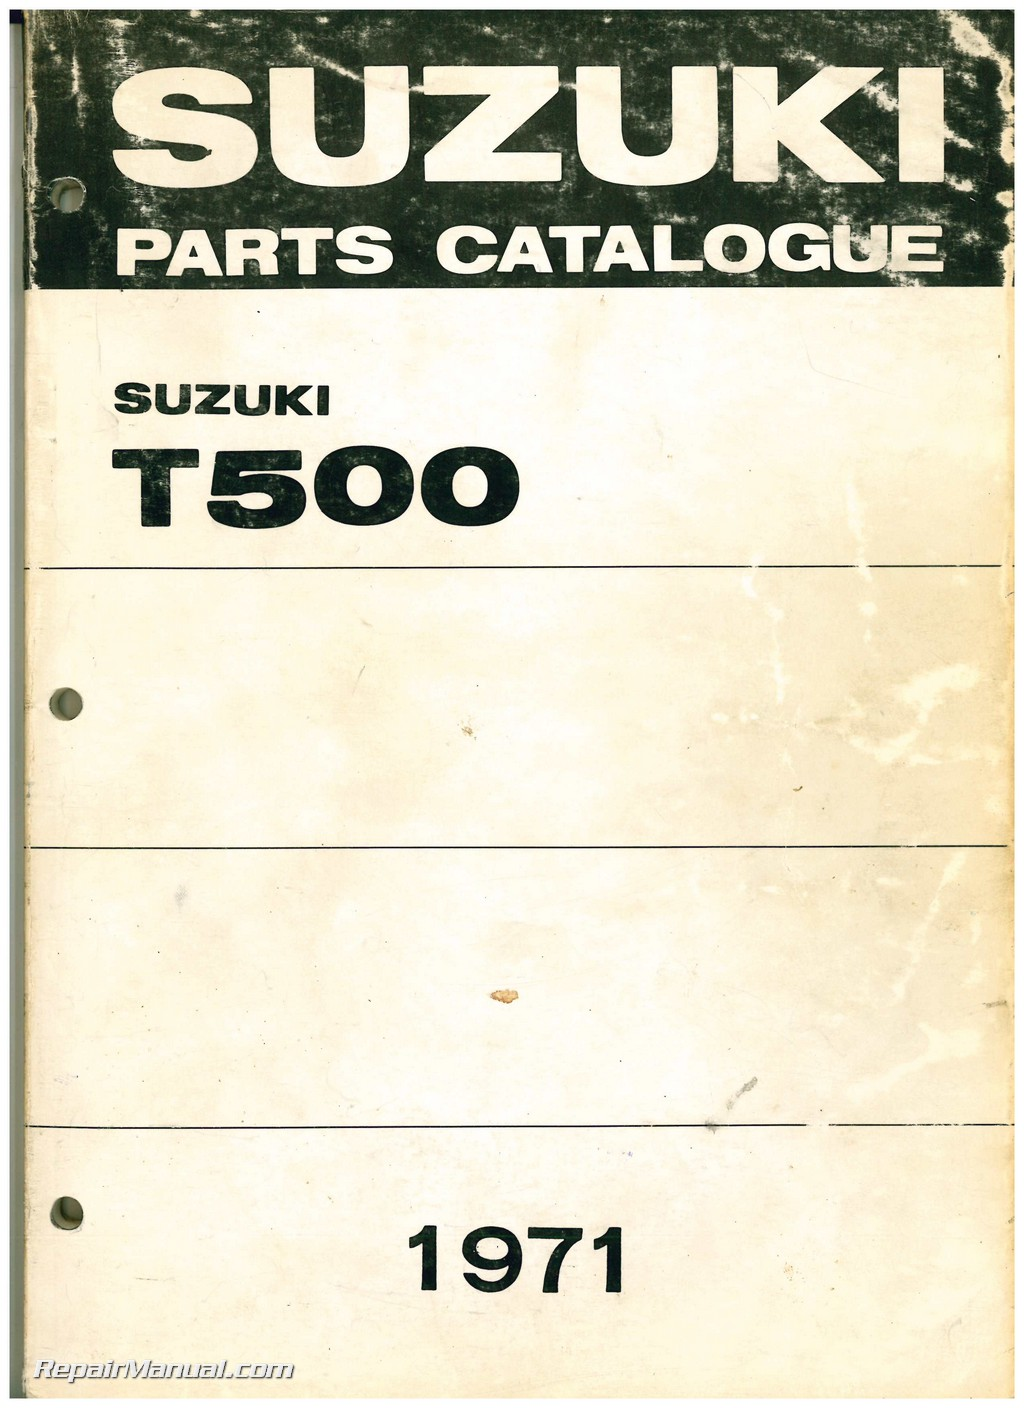 1971 suzuki t500 titan two stroke motorcycle parts manual rh repairmanual com Suzuki Motorcycle Parts Diagrams Suzuki Motorcycles Parts Batteries